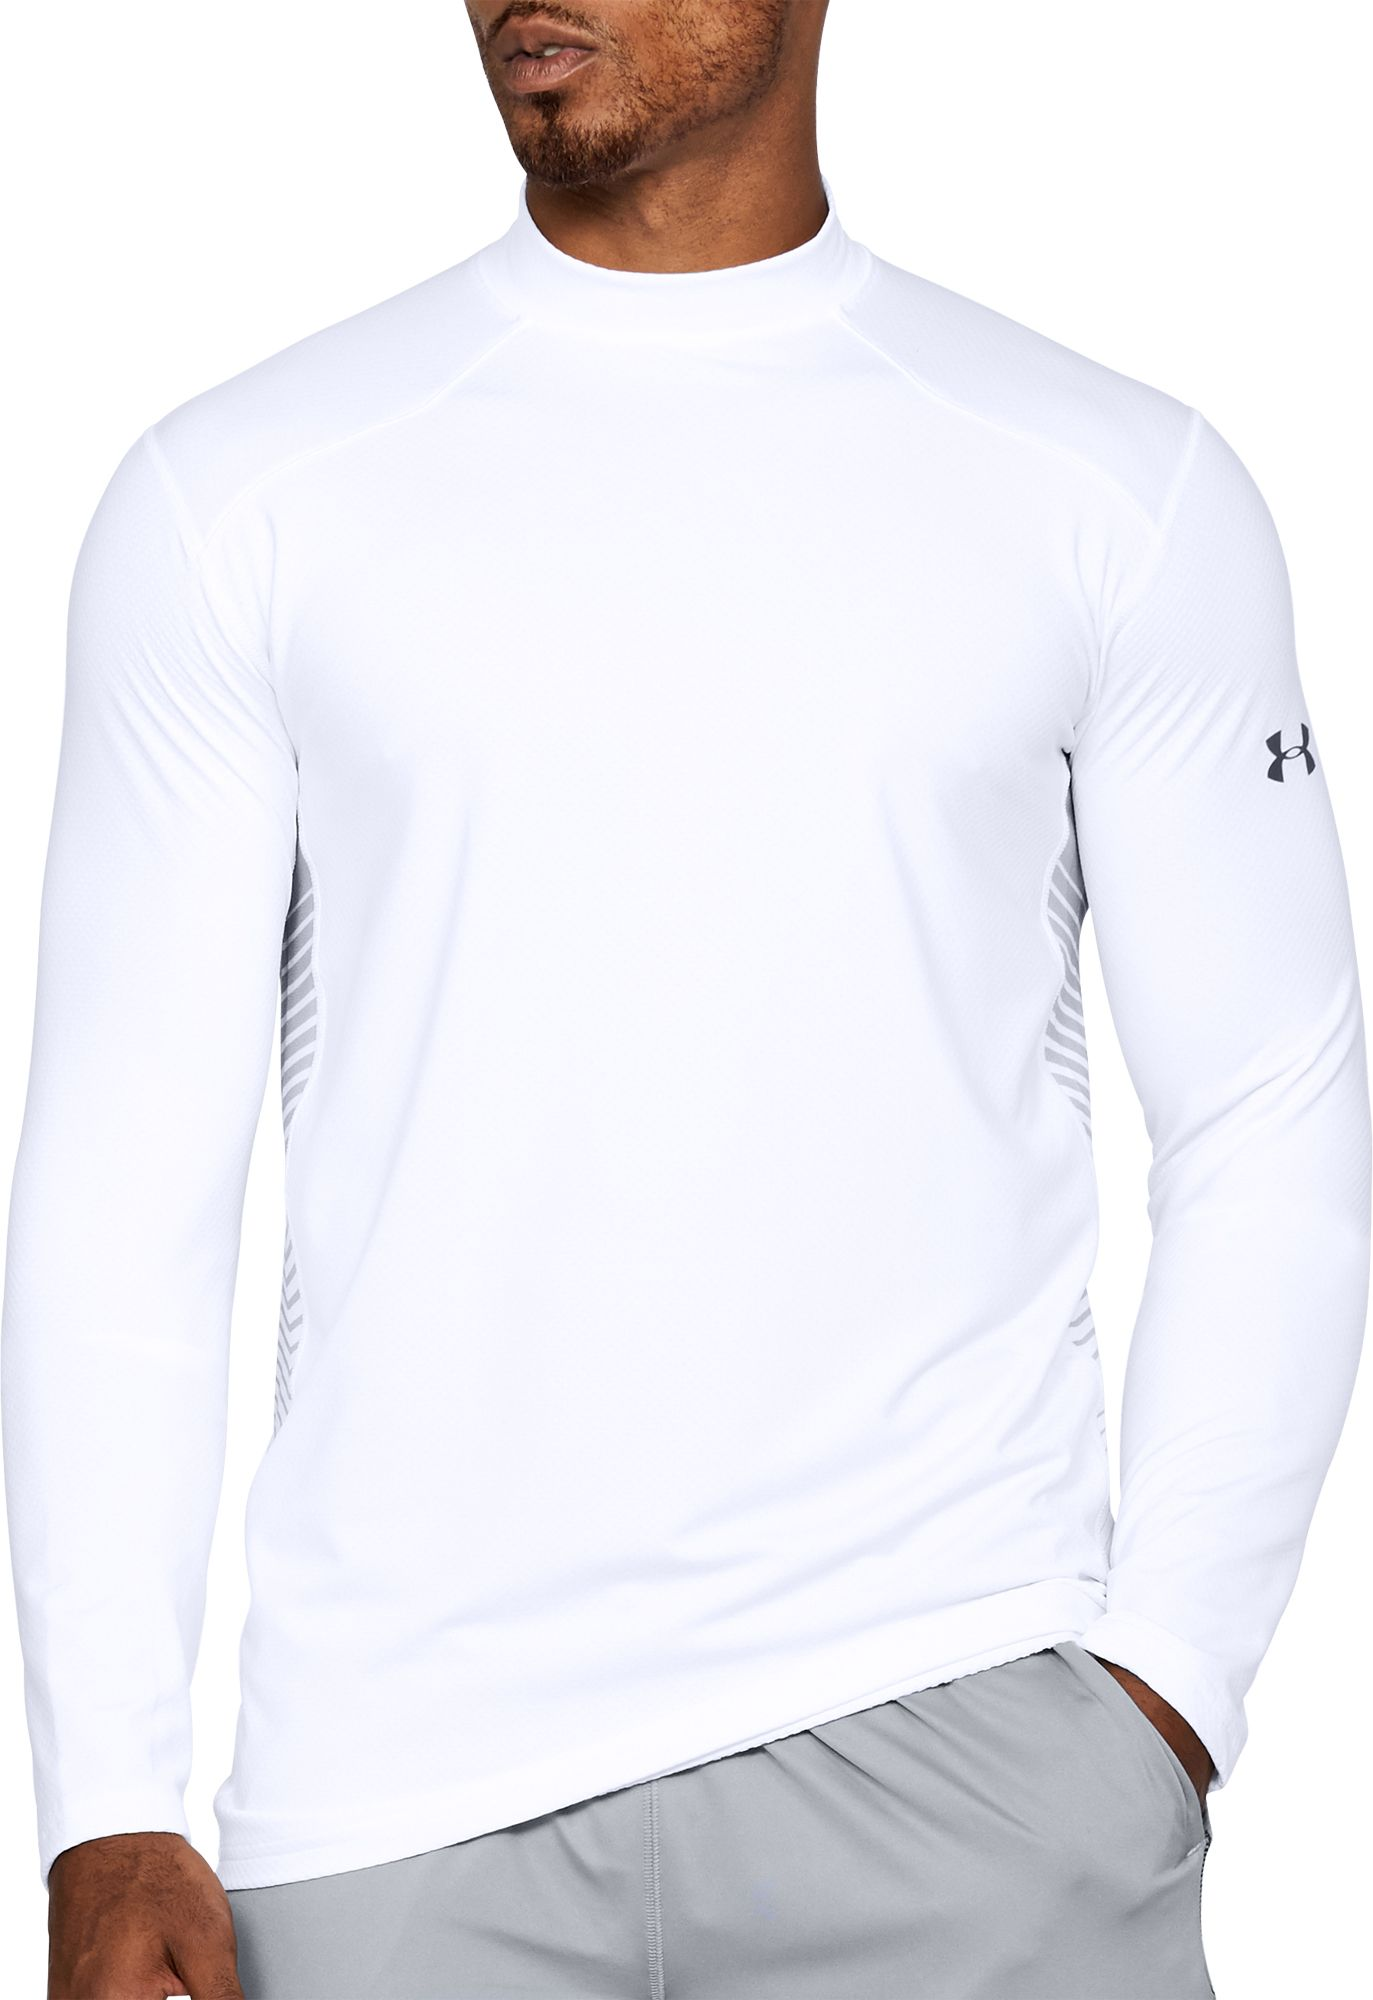 Under Armour Men's ColdGear Reactor Fitted Long Sleeve T-Shirt   DICK'S  Sporting Goods